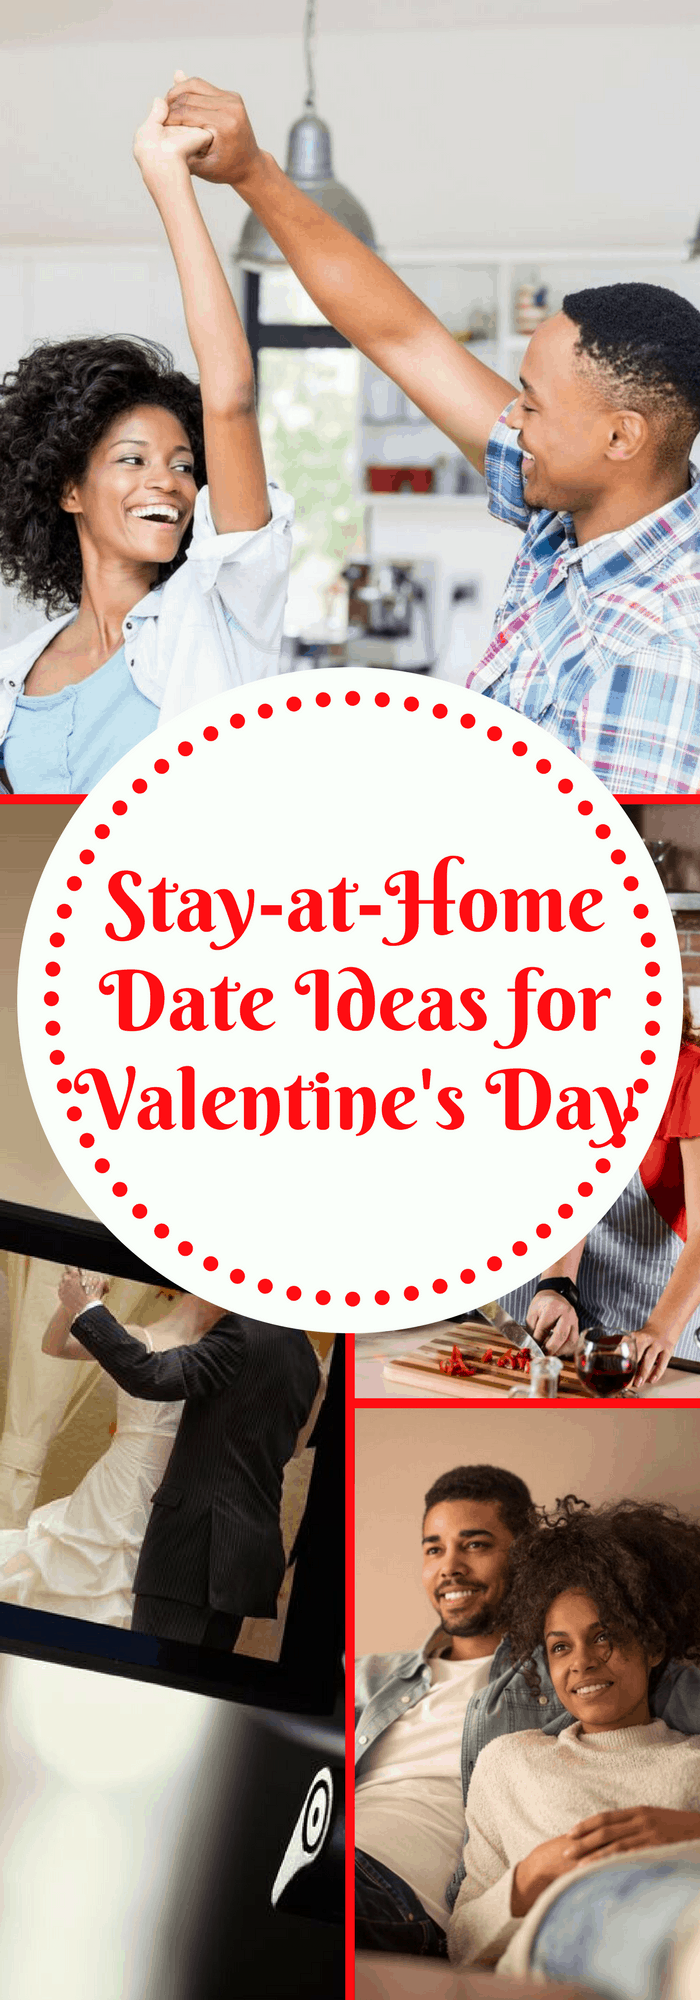 stay at home date ideas for Valentine's day